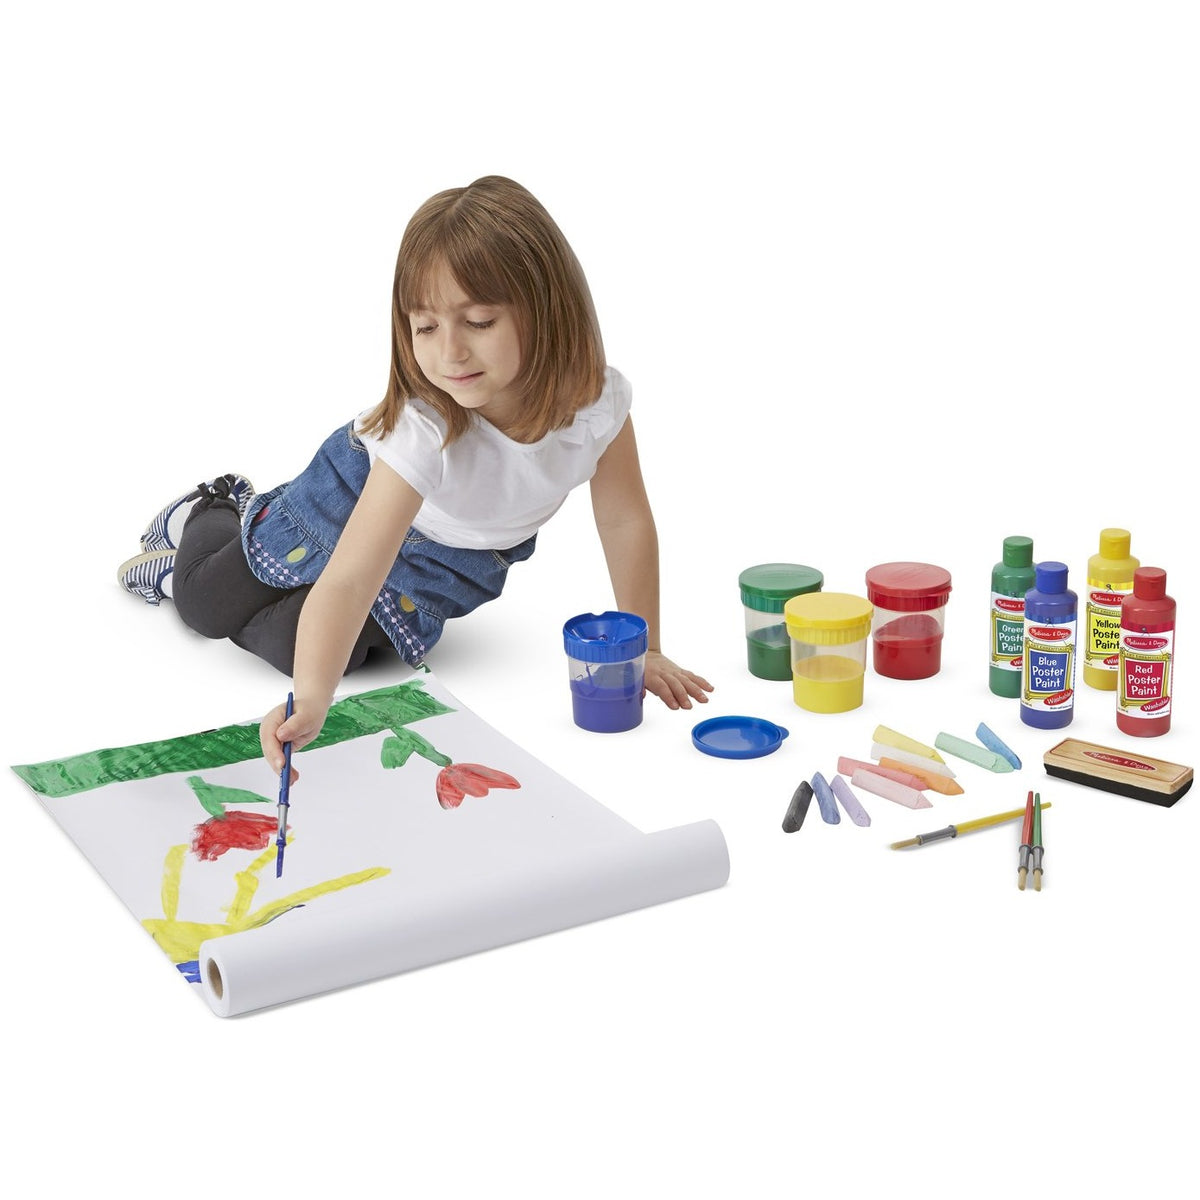 Melissa & Doug Easel Companion Accessory Set